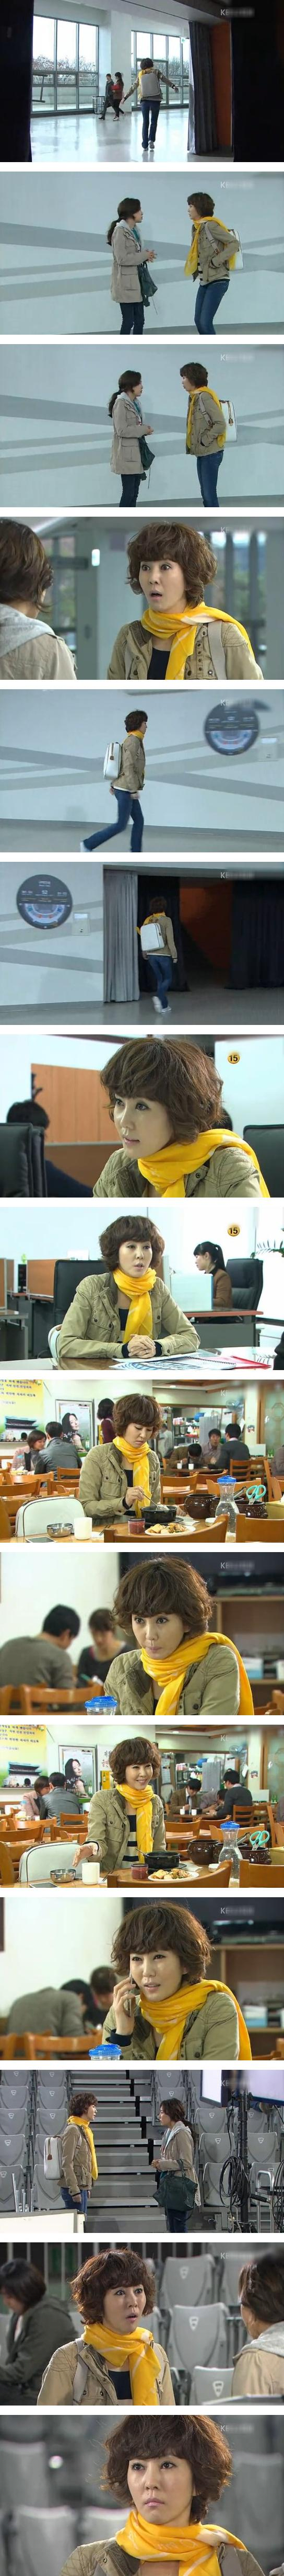 "Added episode 8 captures for the Korean drama "" My Husband Got a"